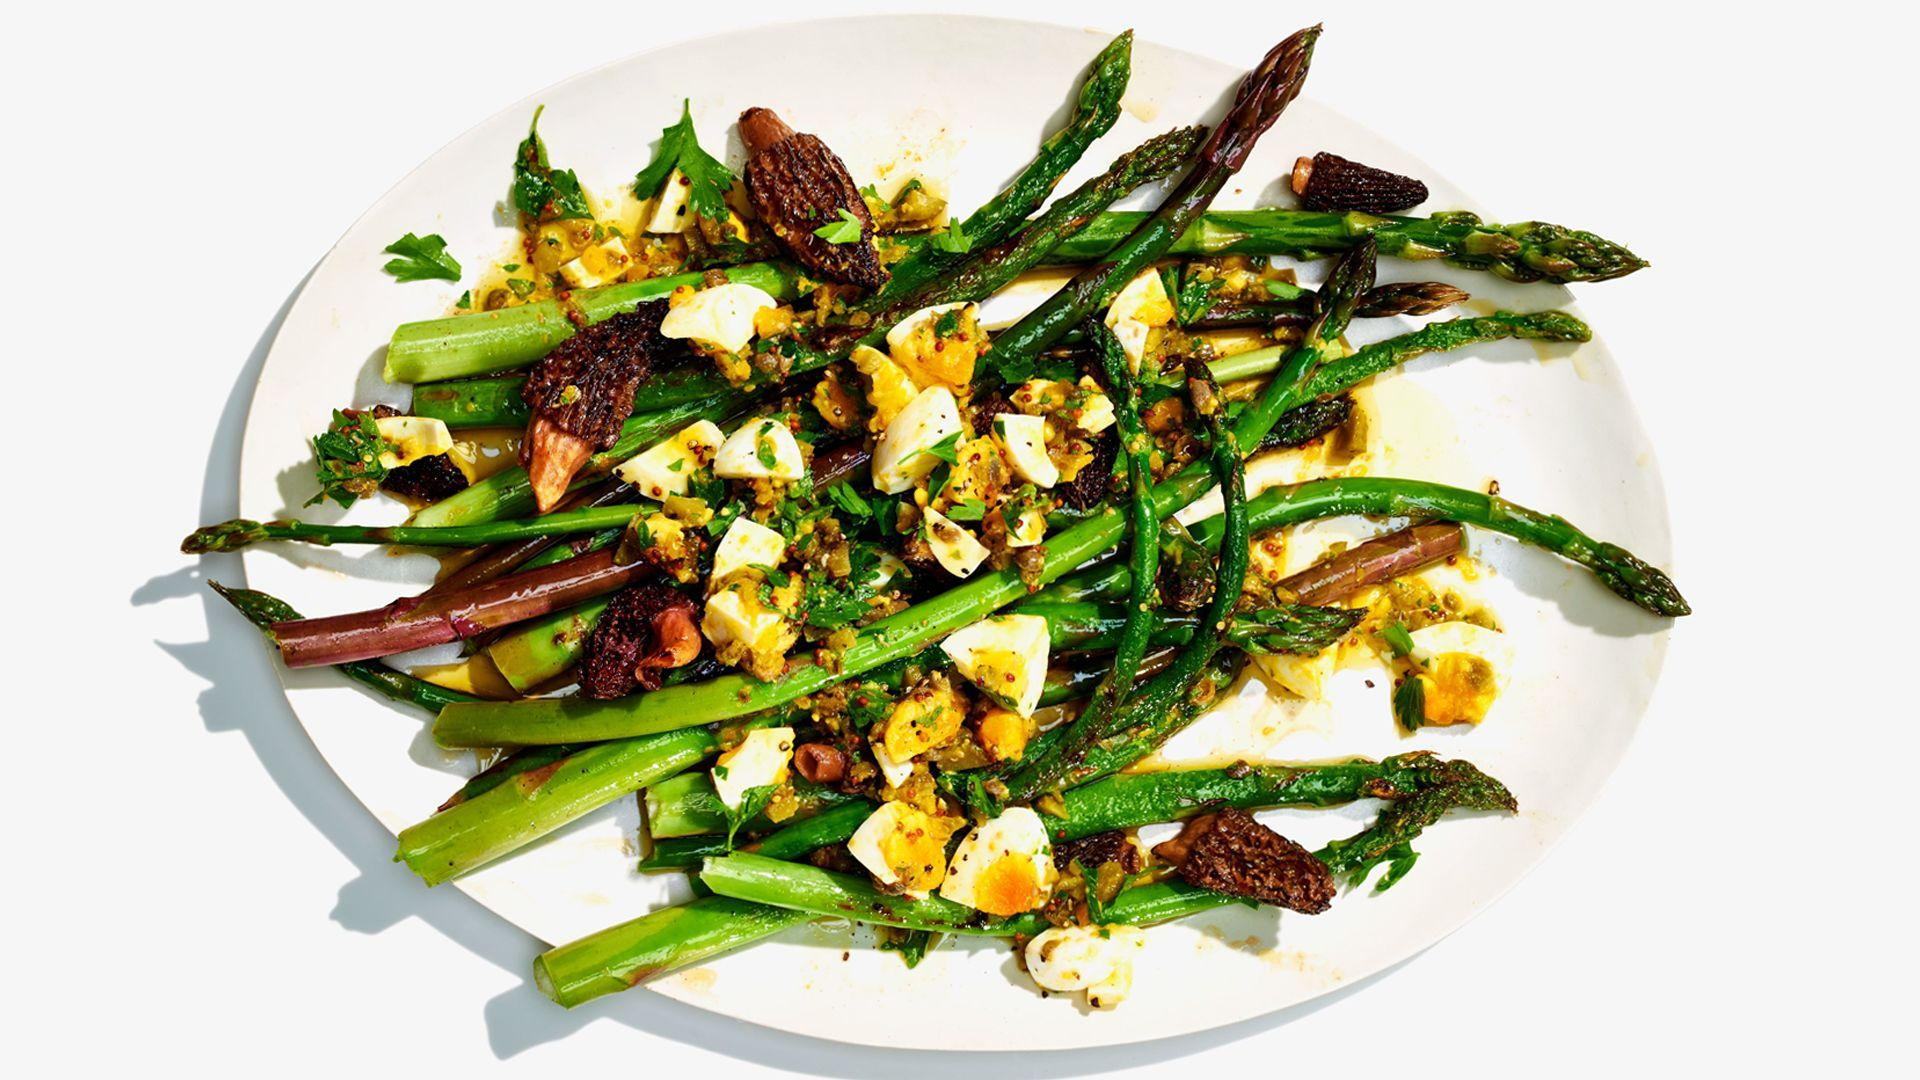 Sauteed Asparagus with Gribiche Dressing